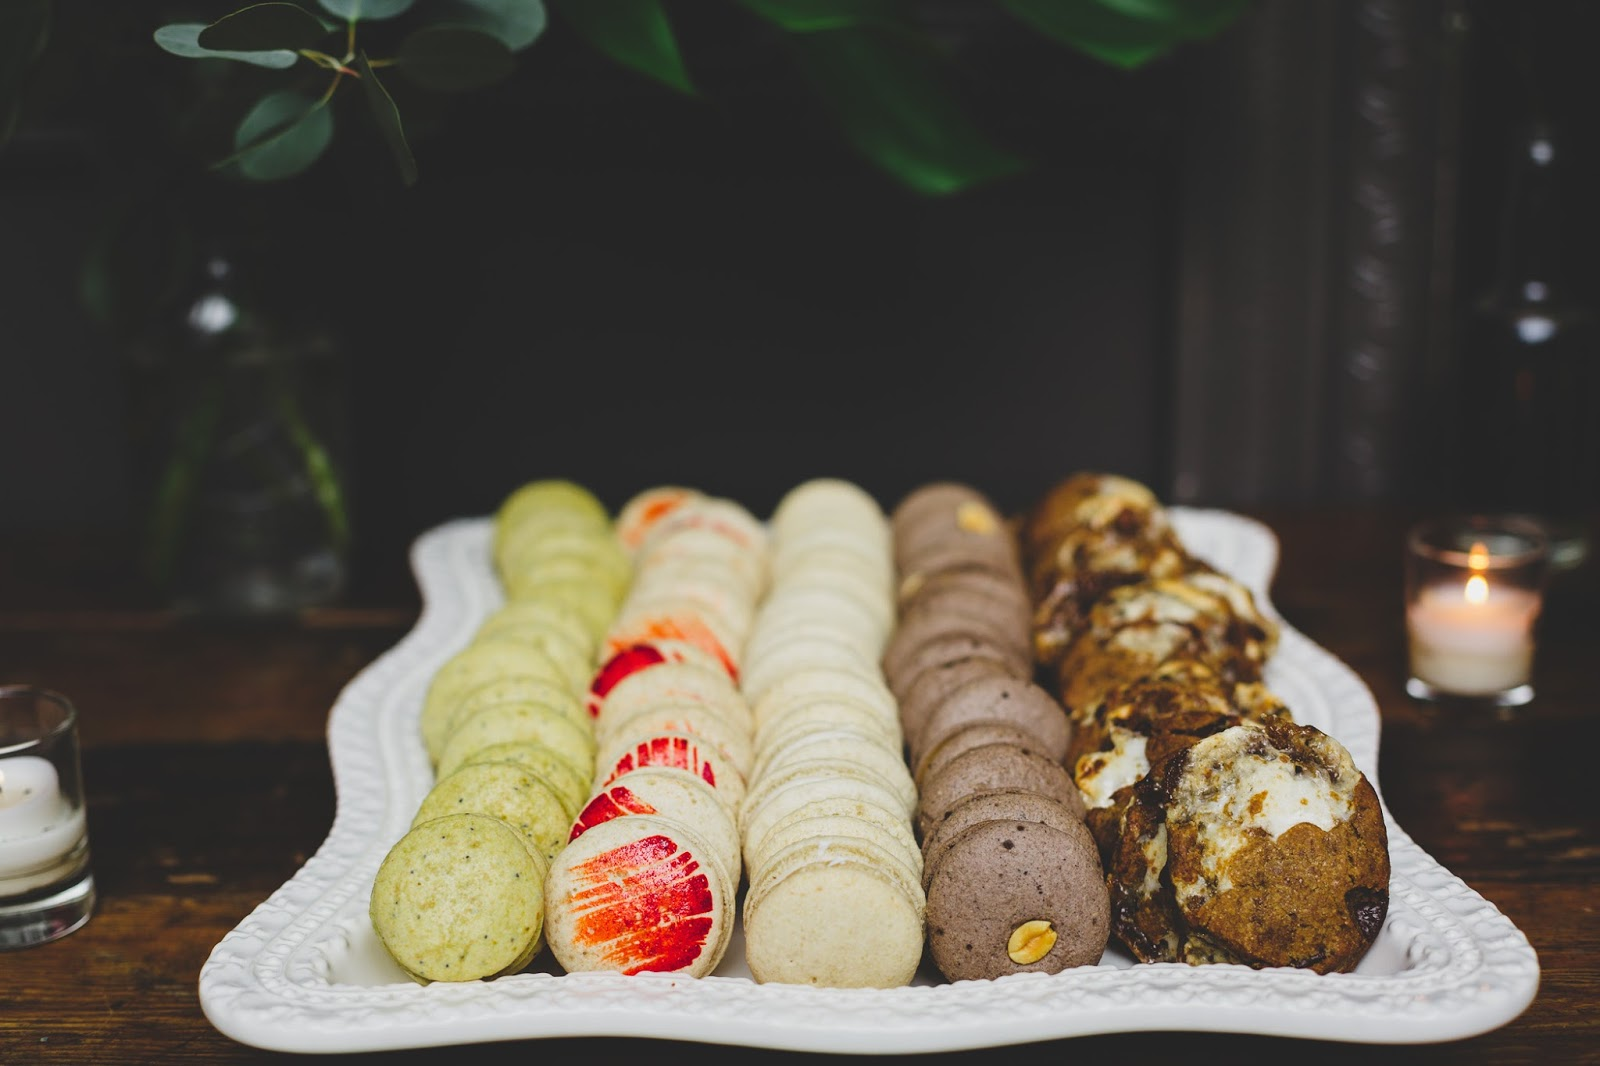 Sweet Maresa's vegan wedding macarons | Wedding Photography - blog.cassiecastellaw.com